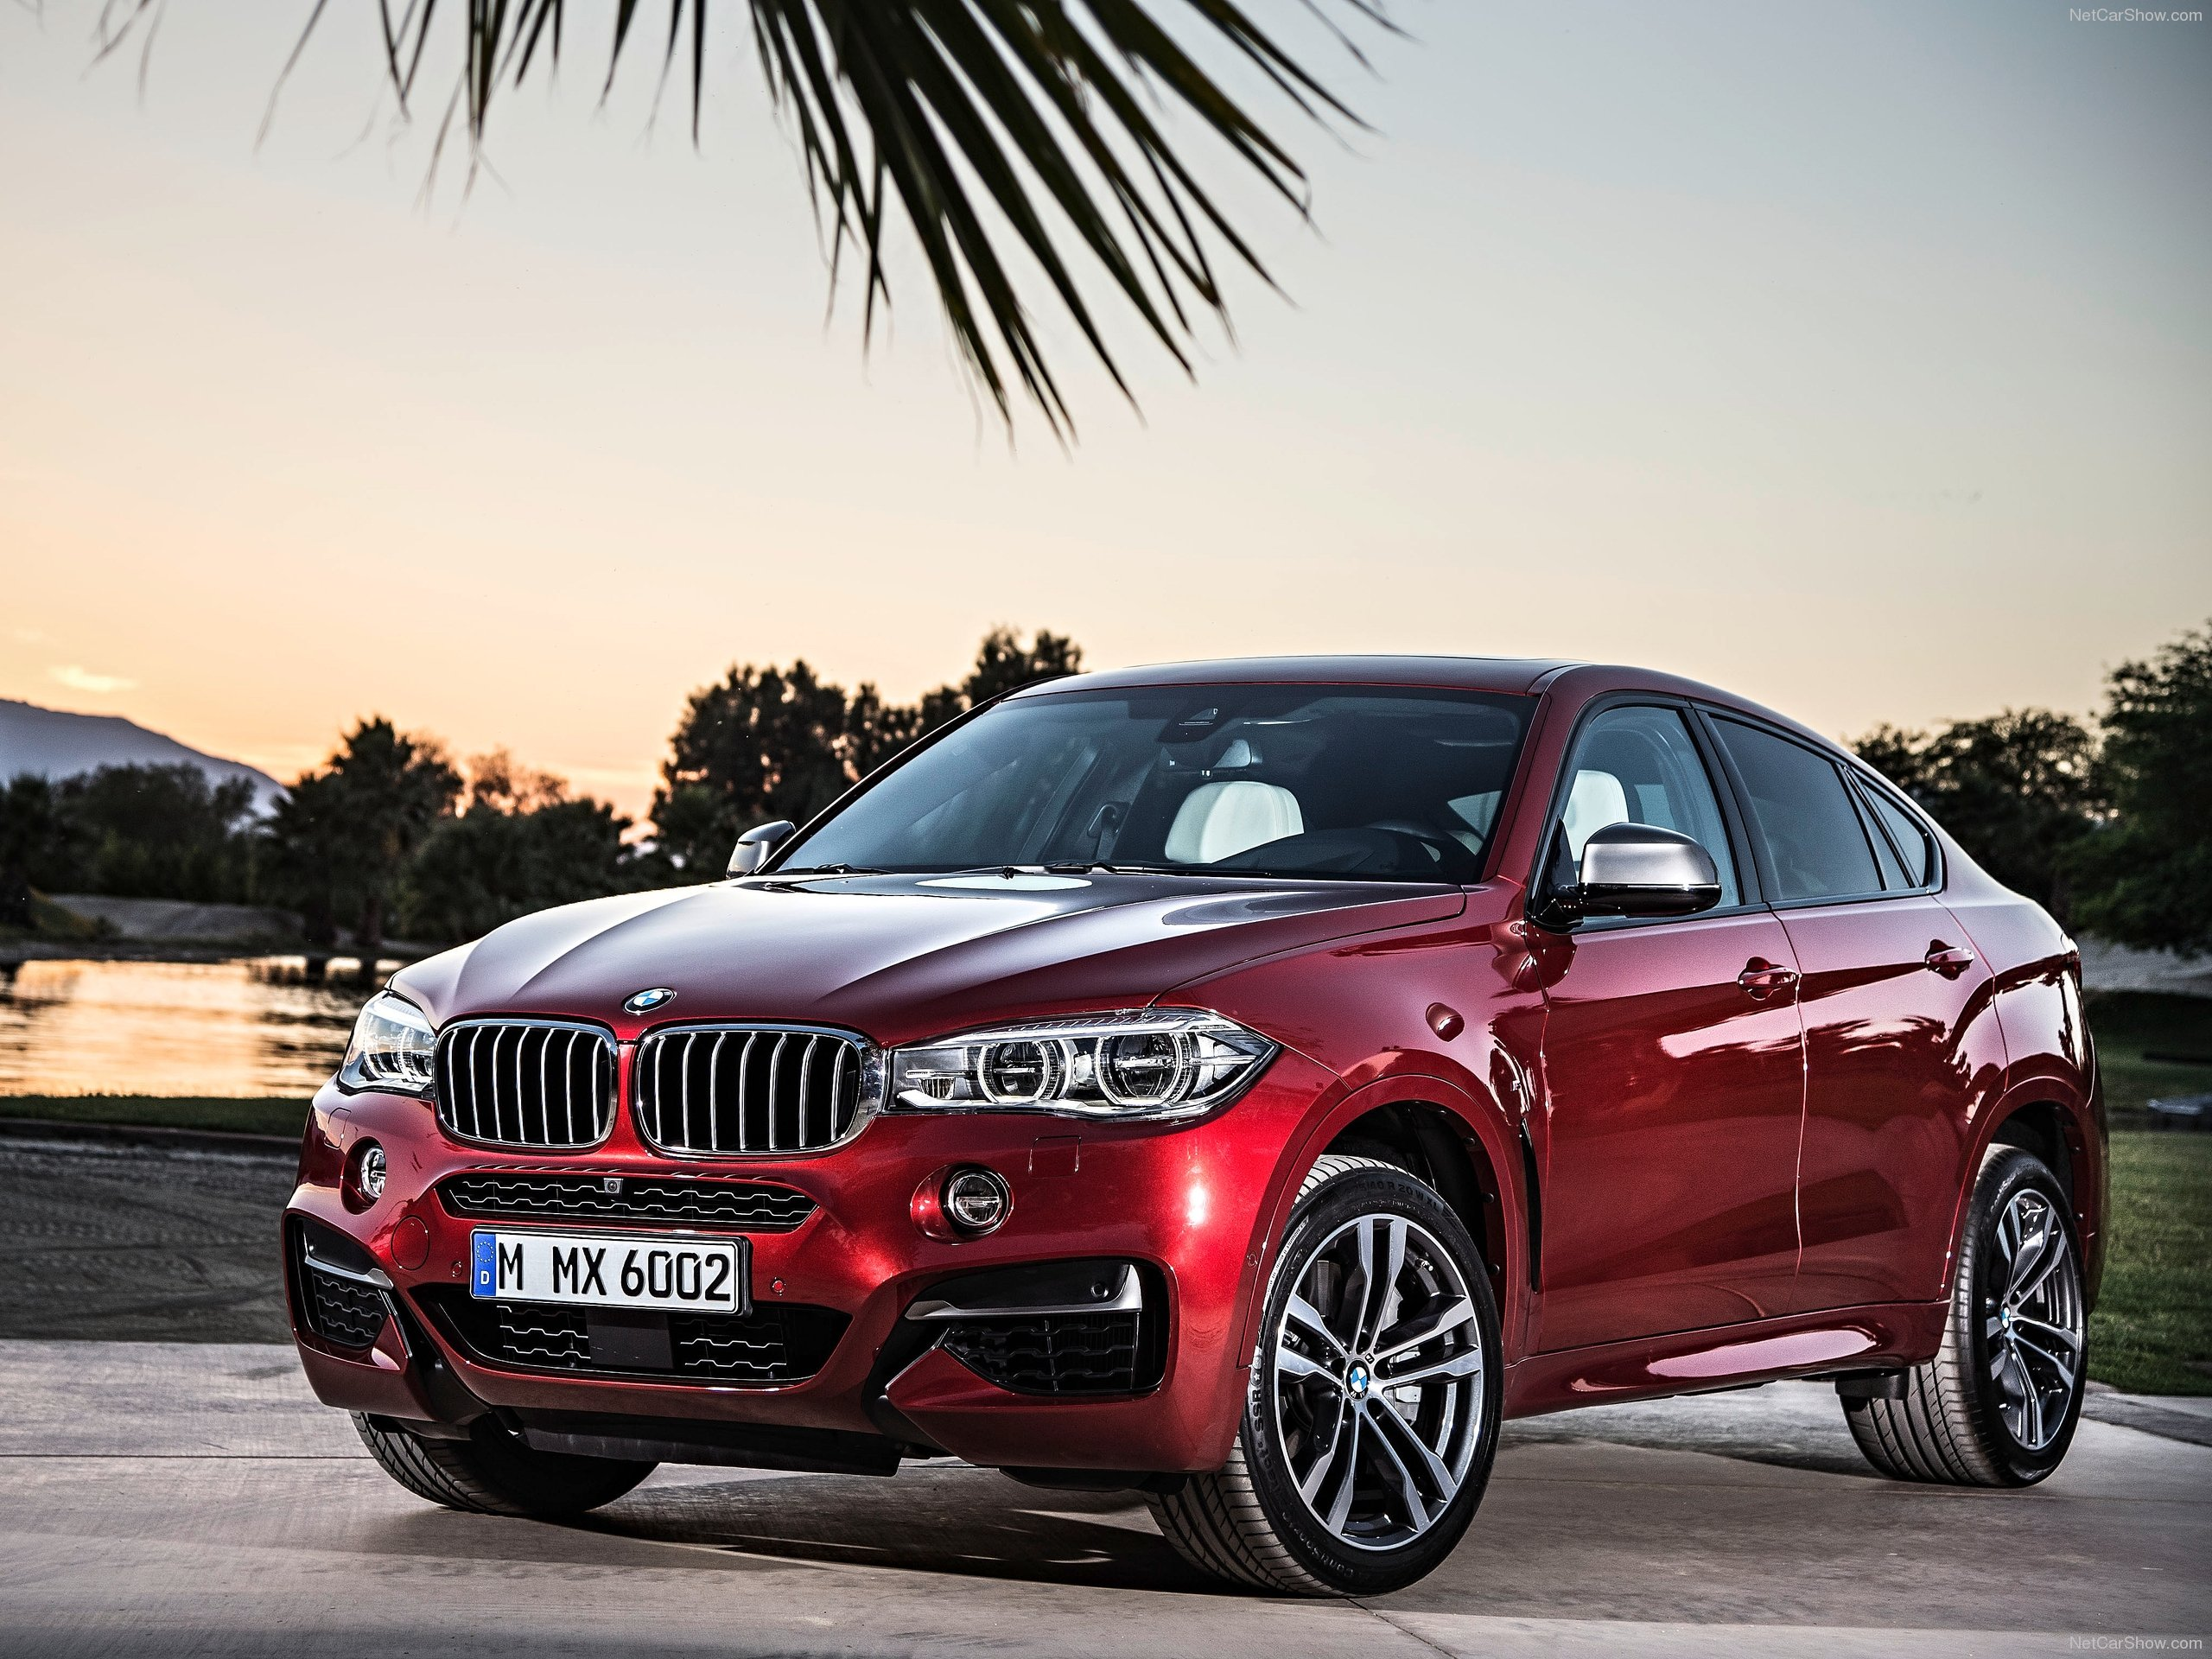 2560x1920 - BMW X6 Wallpapers 21